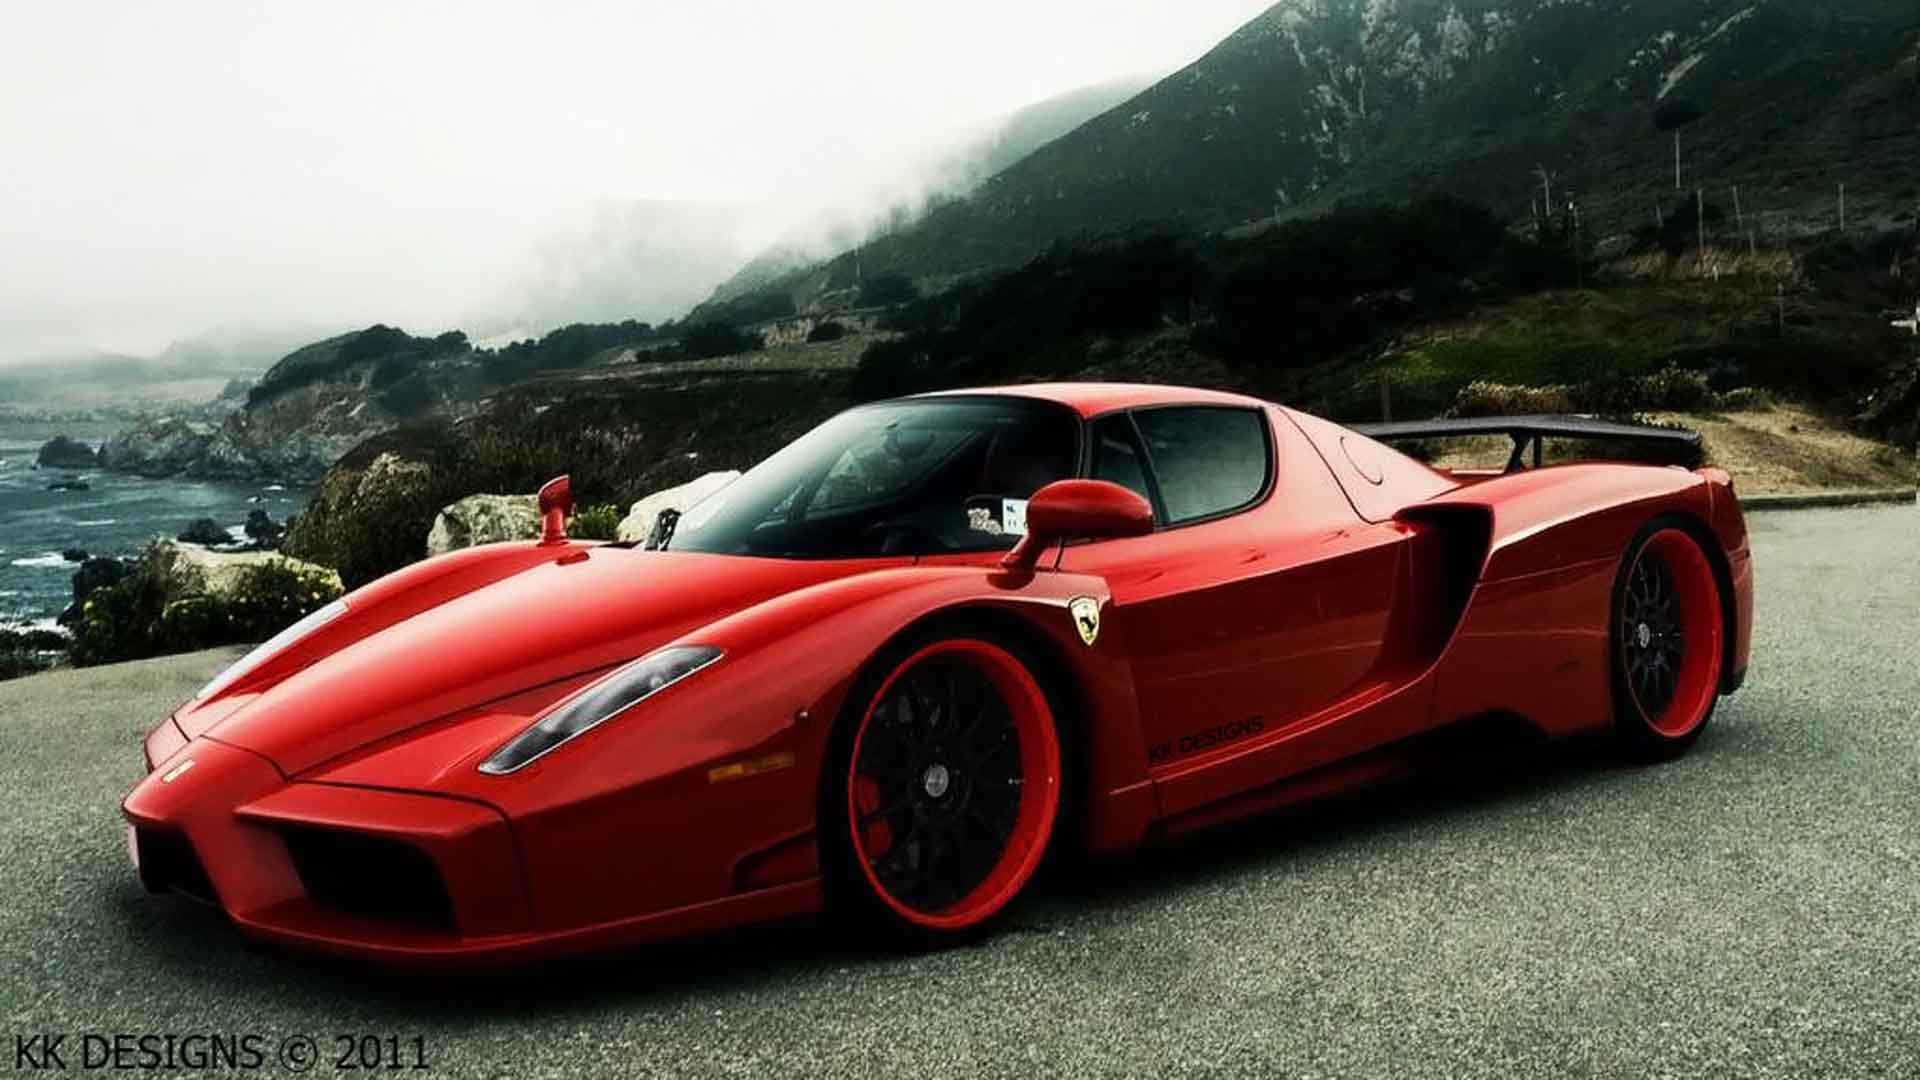 Cool Car Wallpapers Download Free Talk Sick Cars Wallpapers